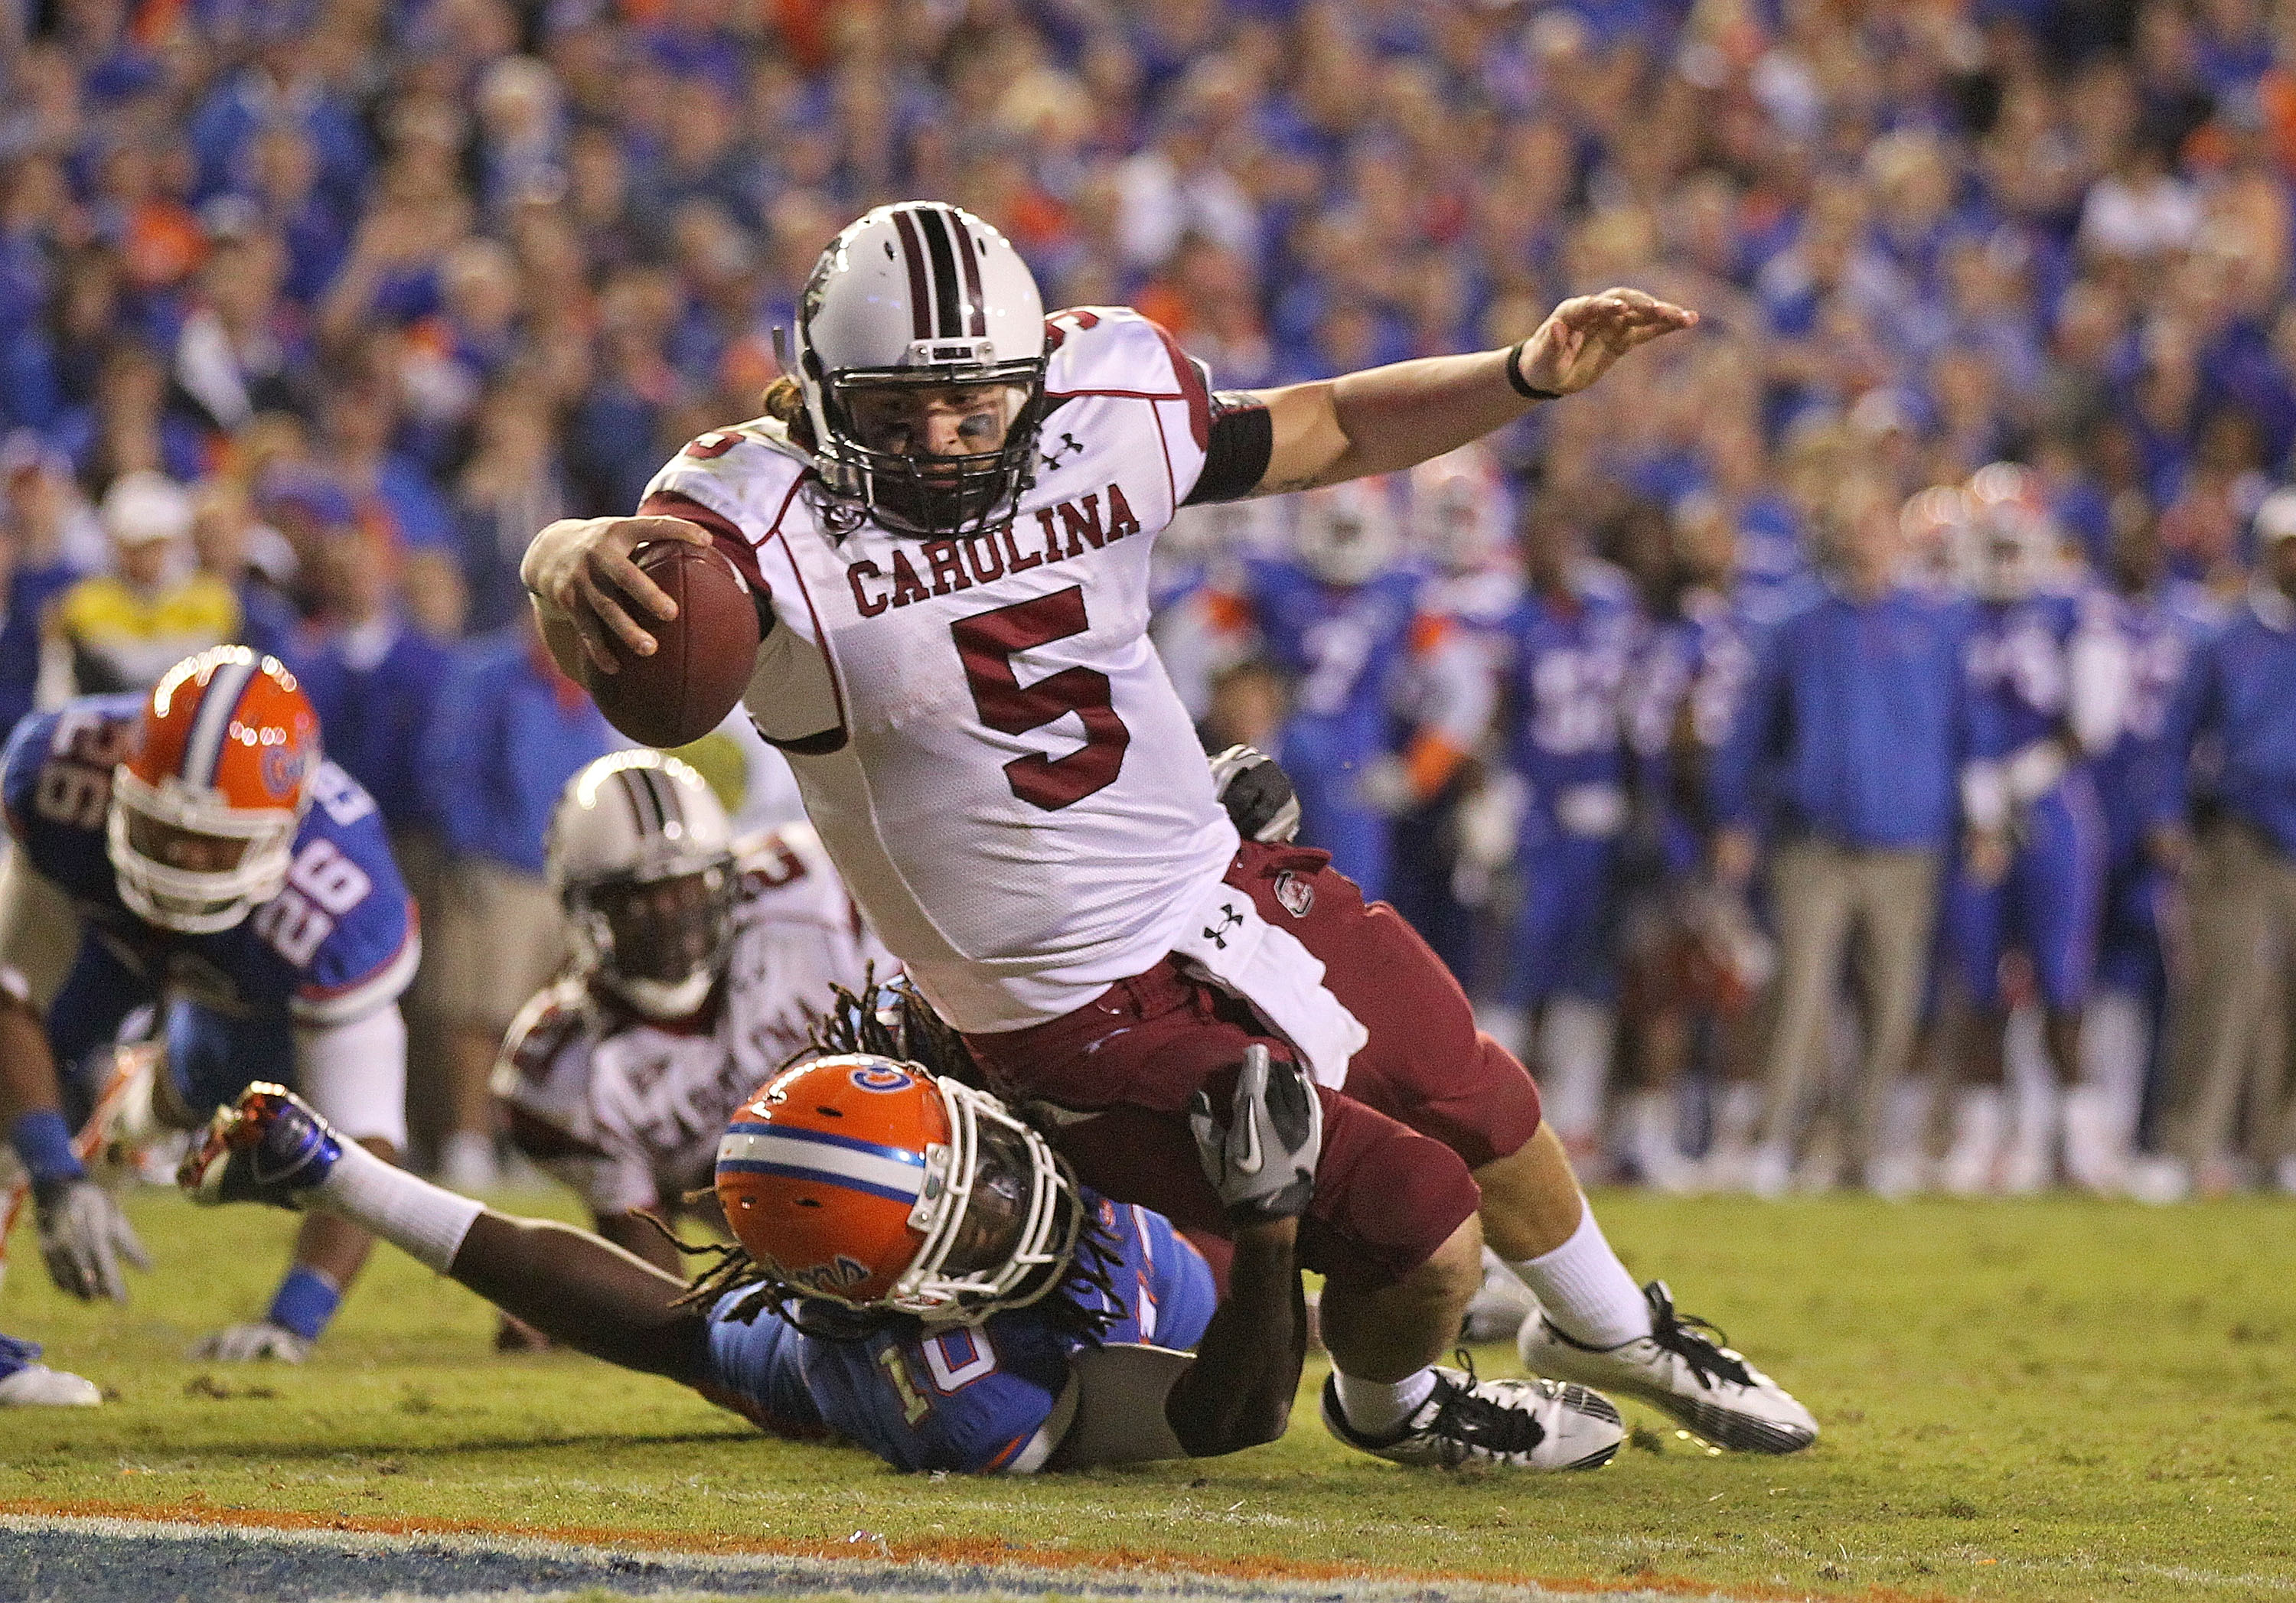 GAINESVILLE, FL - NOVEMBER 13:  Stephen Garcia #5 of the South Carolina Gamecocks rushes for a touchdown against Will Hill #10 of the Florida Gators during a game at Ben Hill Griffin Stadium on November 13, 2010 in Gainesville, Florida. The Gamecocks beat